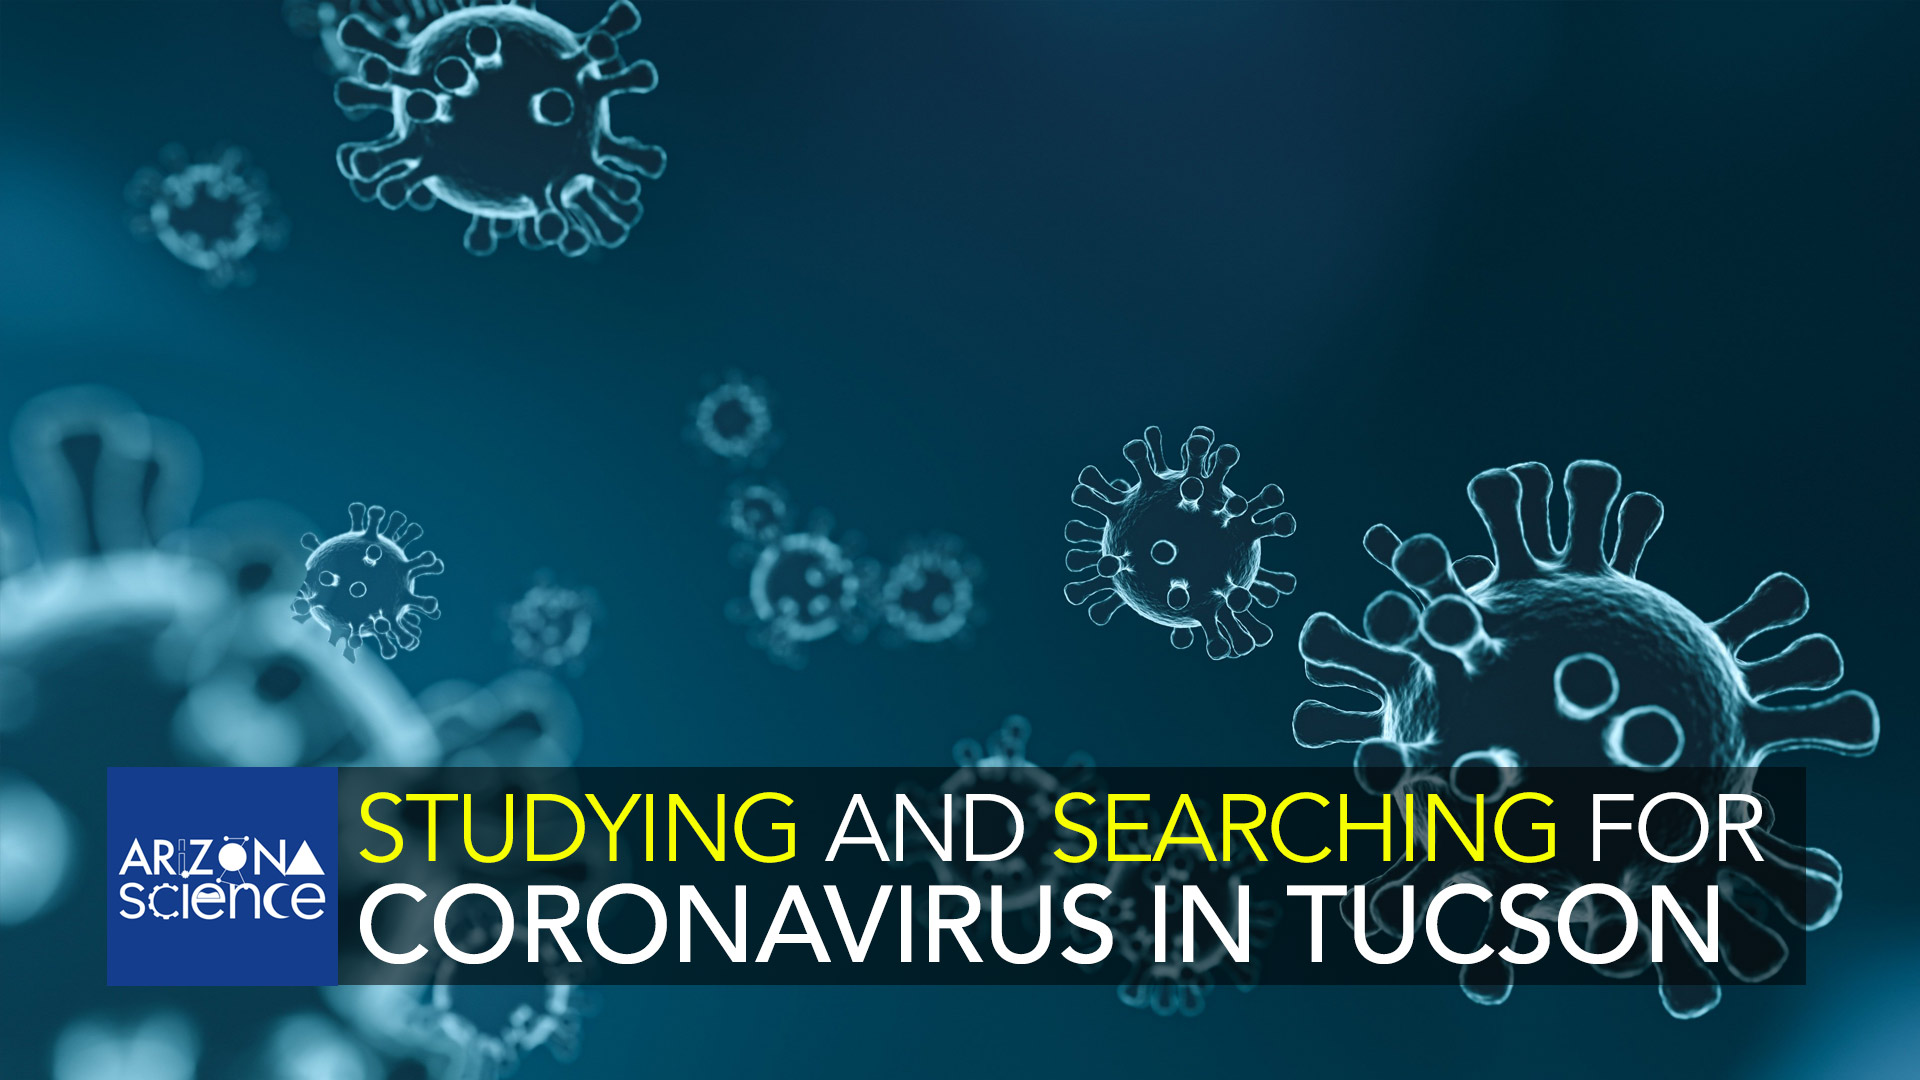 Studying and searching for coronavirus in Tucson